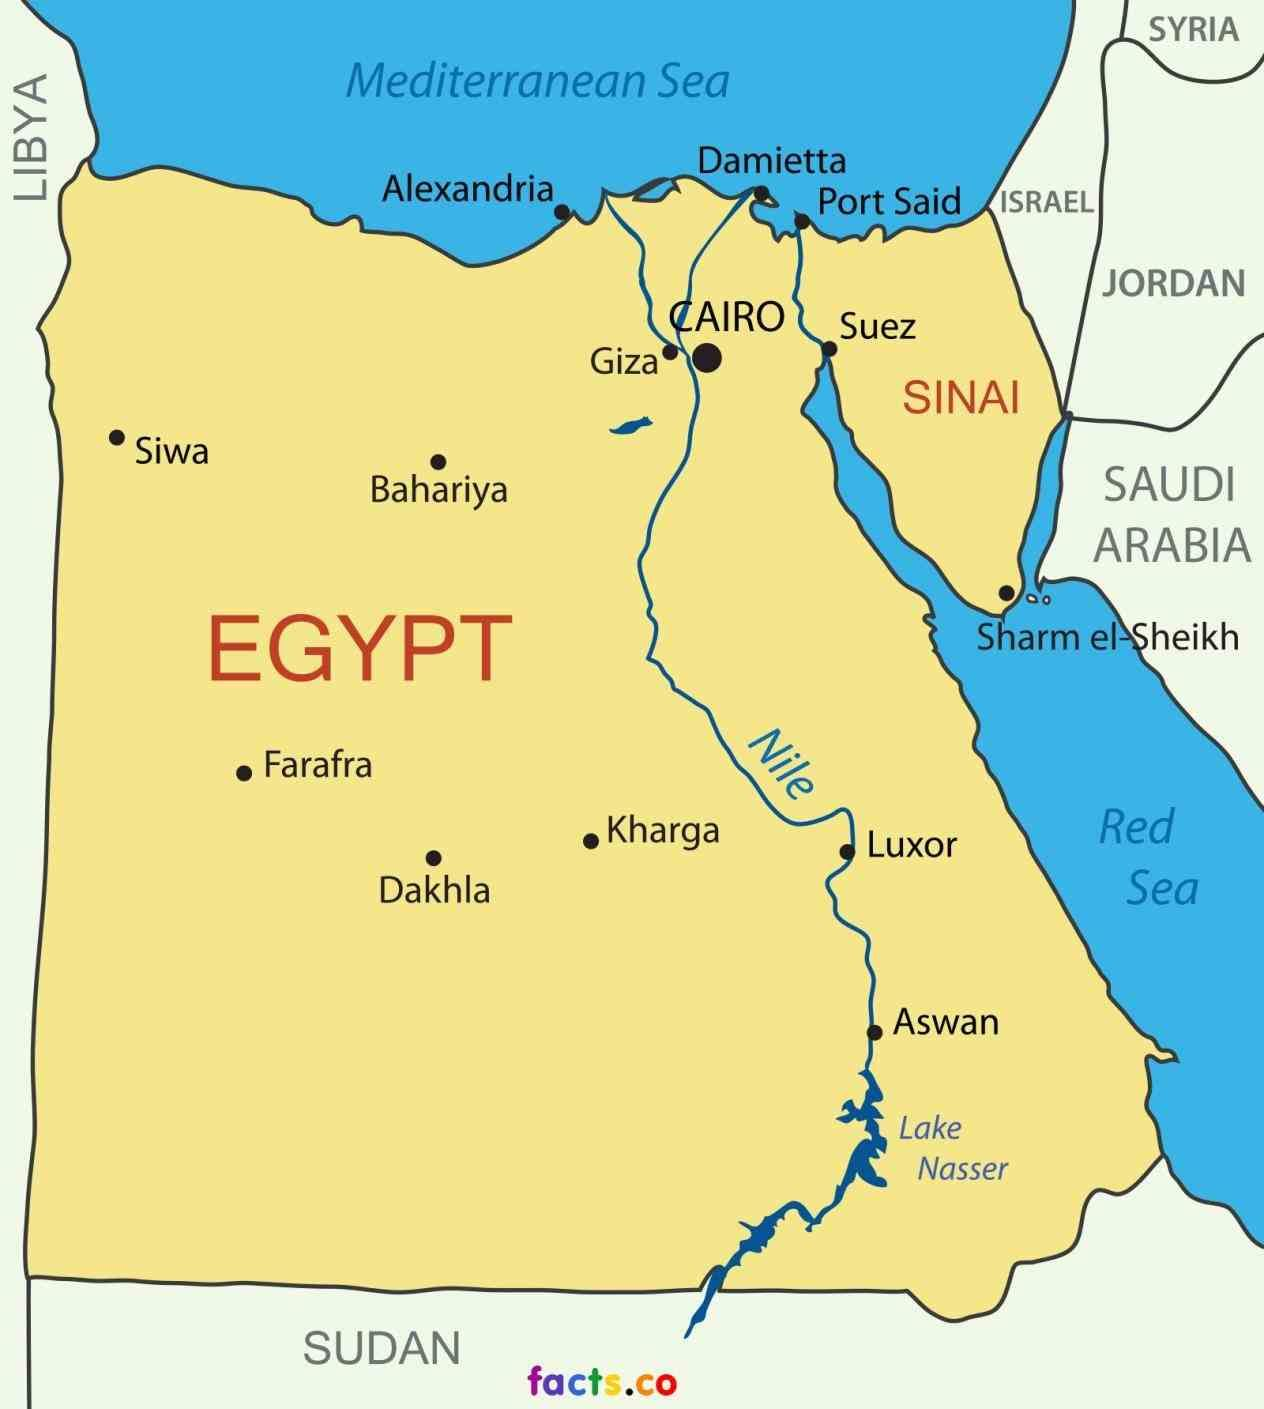 the capital of and largest city in arab africa located near nile delta it was